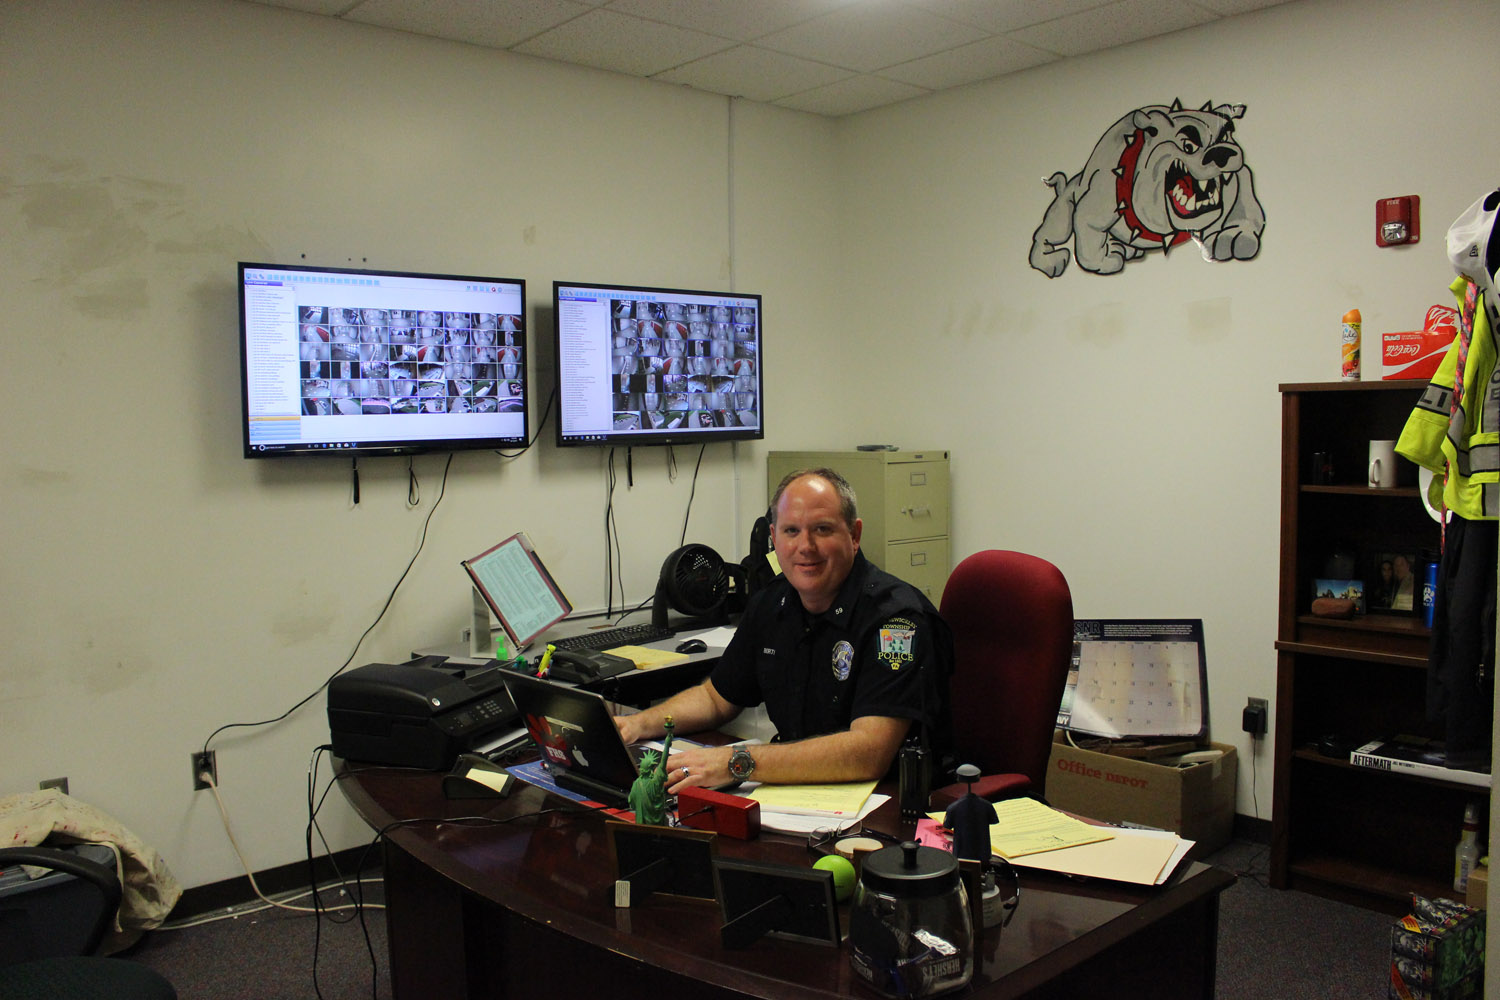 Resource Officer Tom Liberty sits at his desk in his new office space.